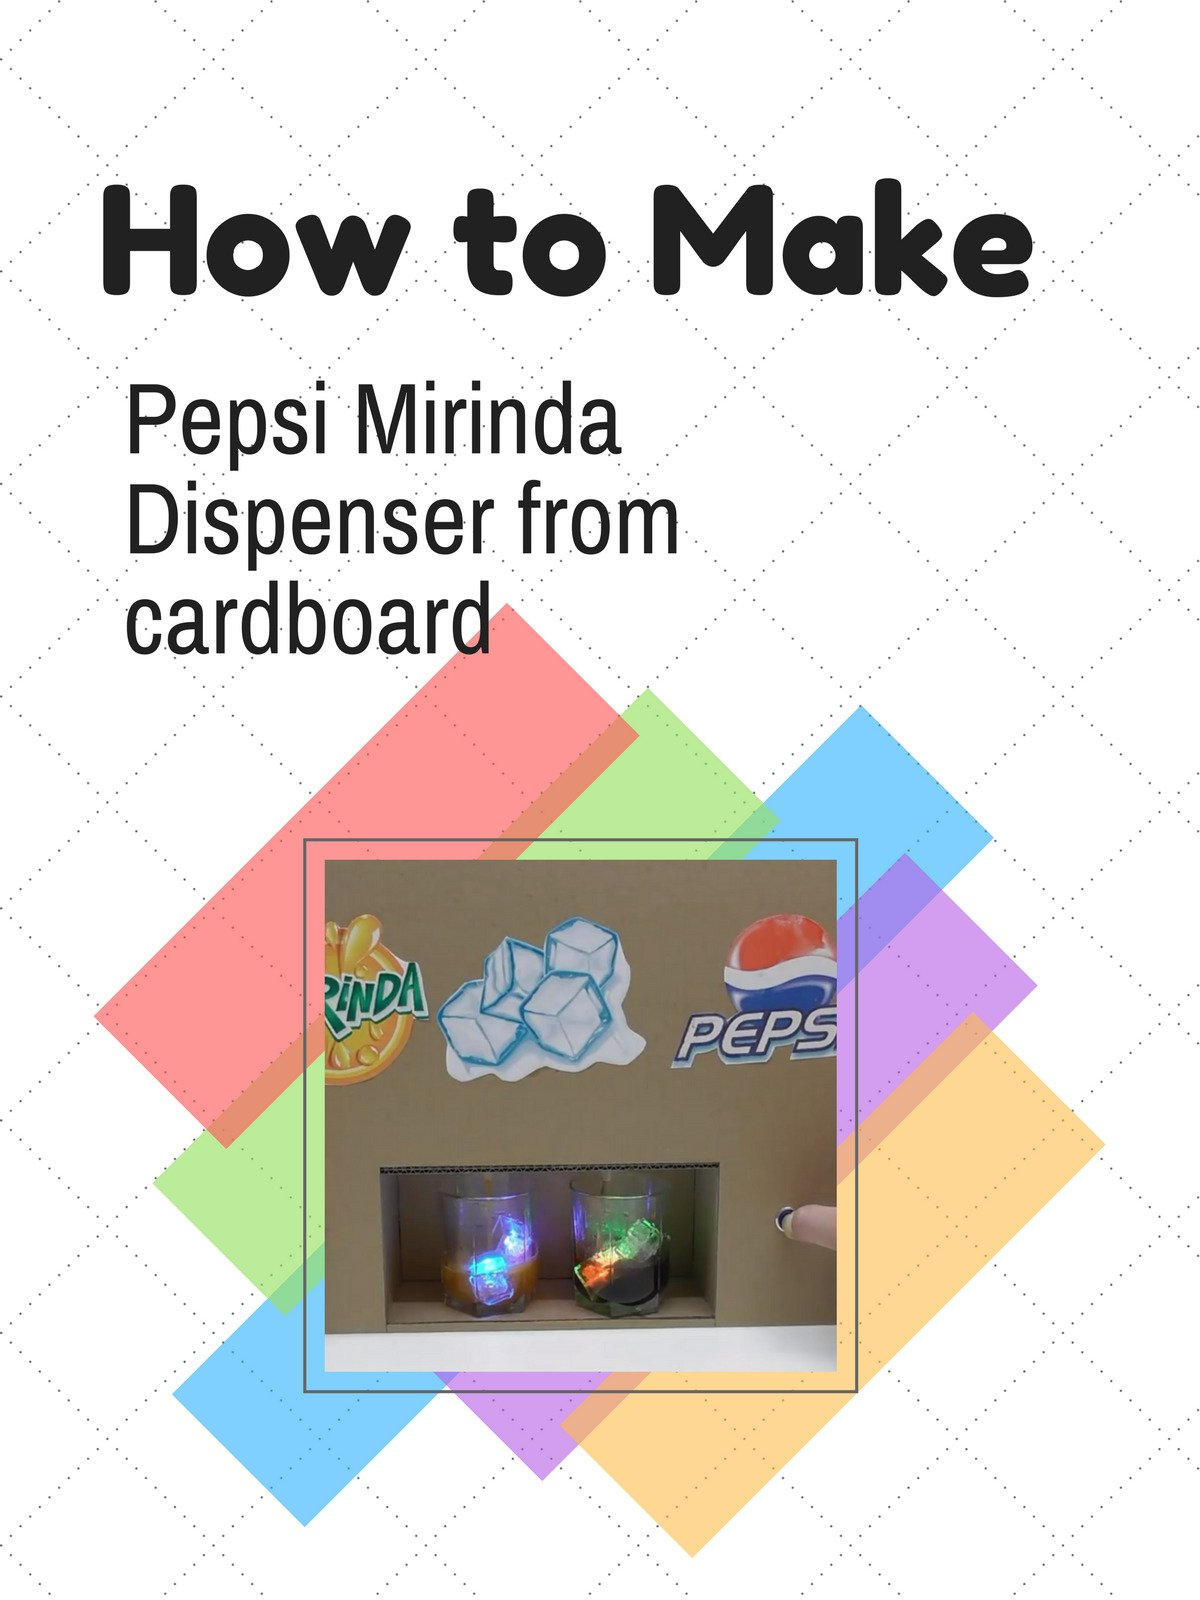 Watch How To Make Pepsi Mirinda Dispenser From Wiring Diagram For Sign Cardboard Prime Video